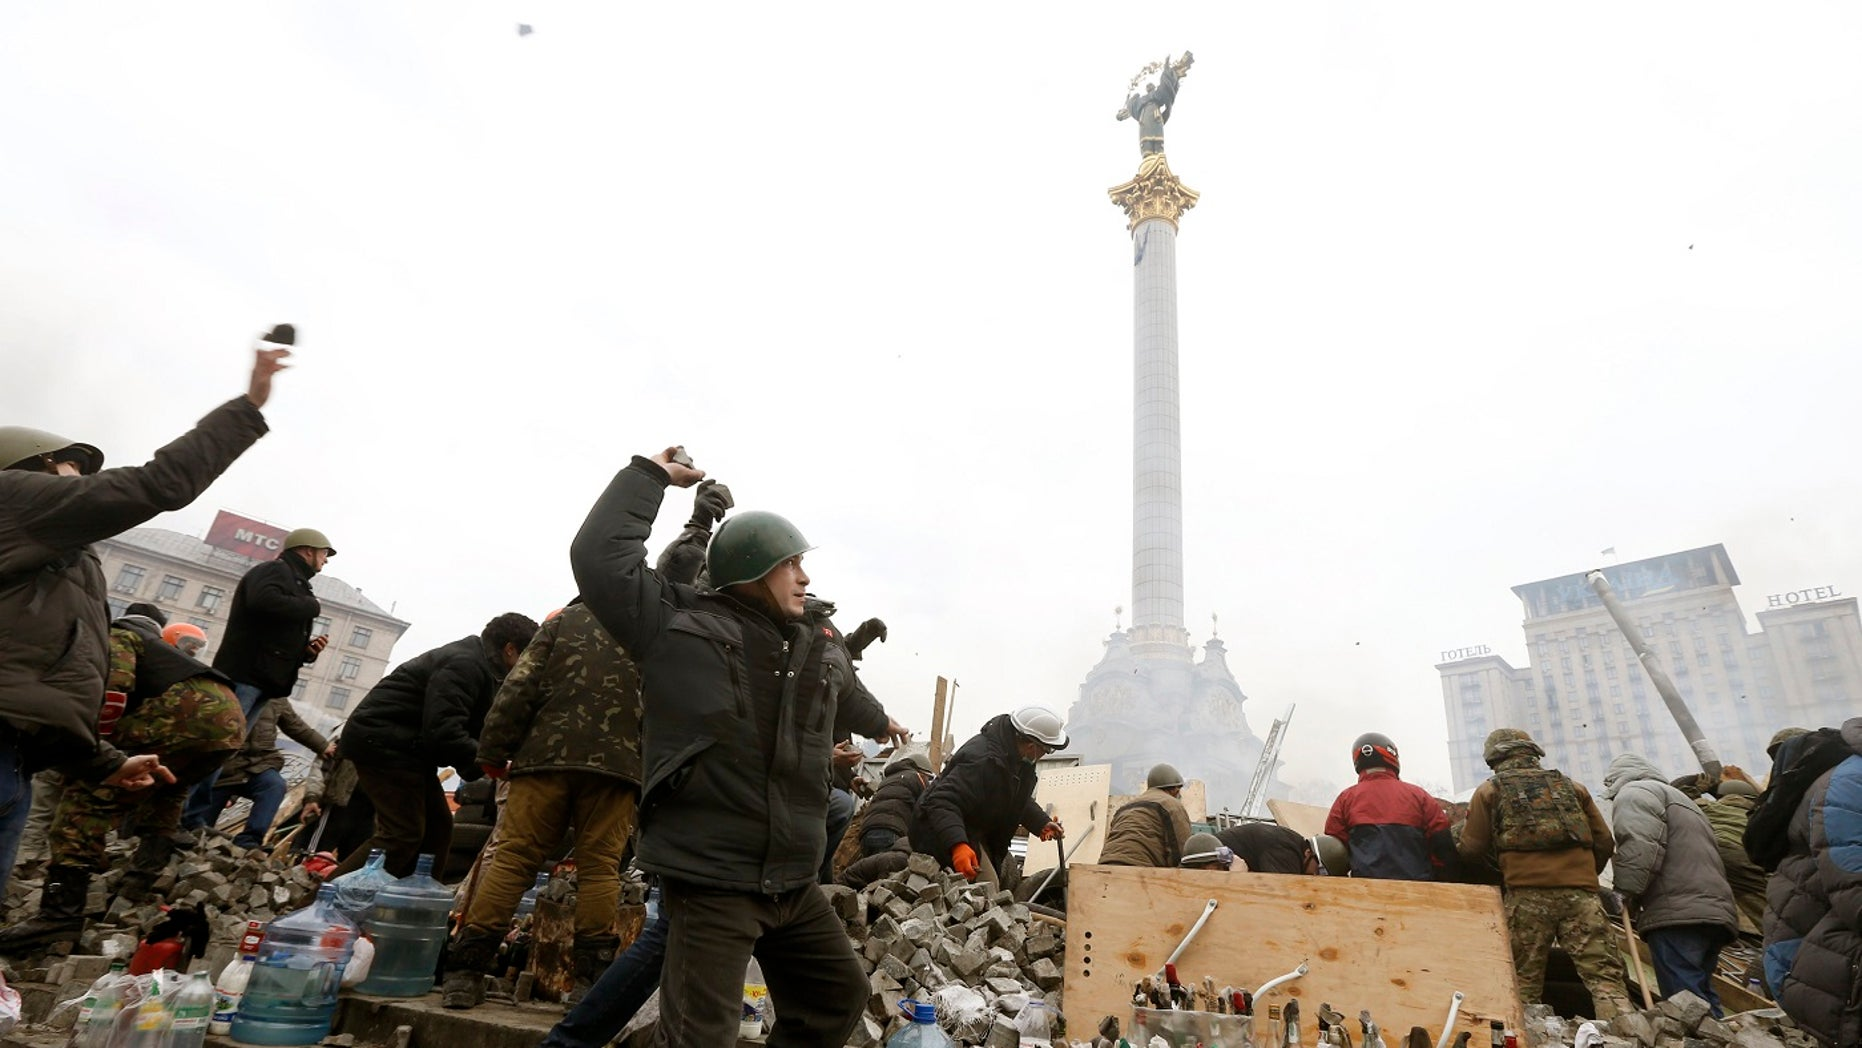 Anti-government protesters throw stones toward Interior Ministry members and riot police in Independence Square in central Kiev, Feb. 19, 2014.